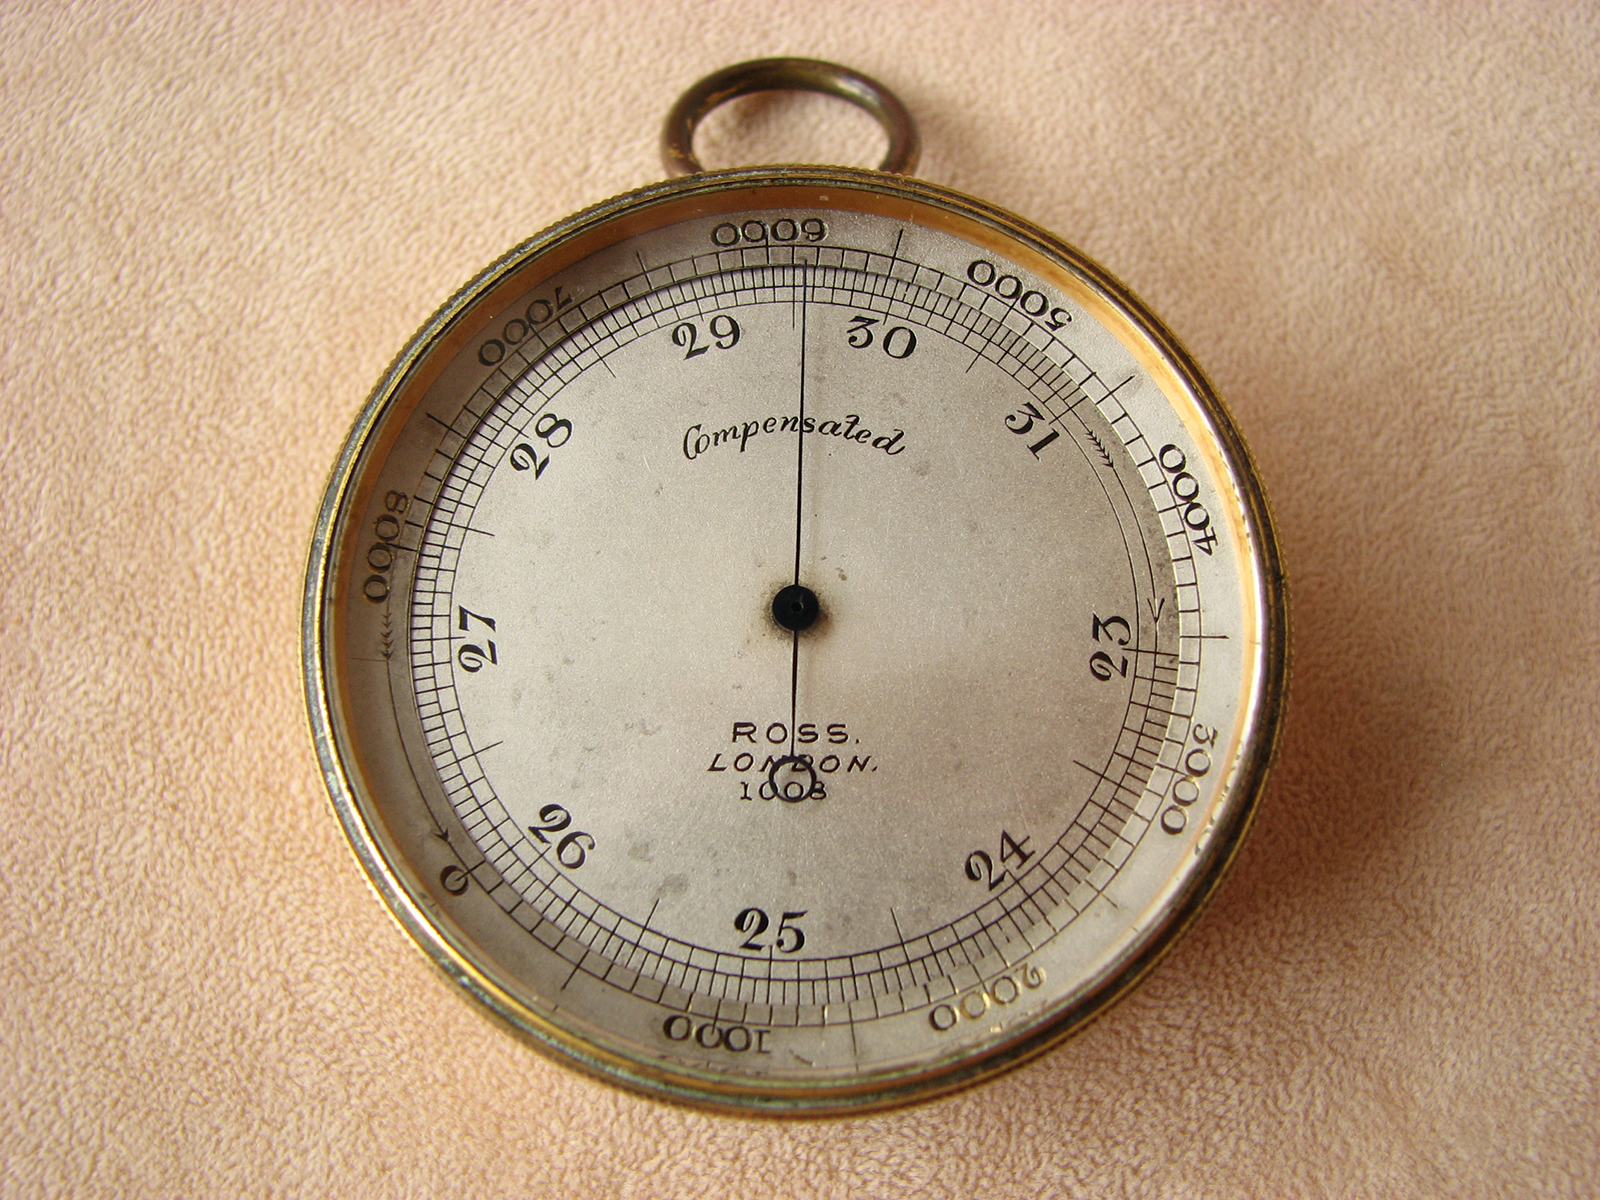 Antique Ross pocket barometer with Lord Napier inscription